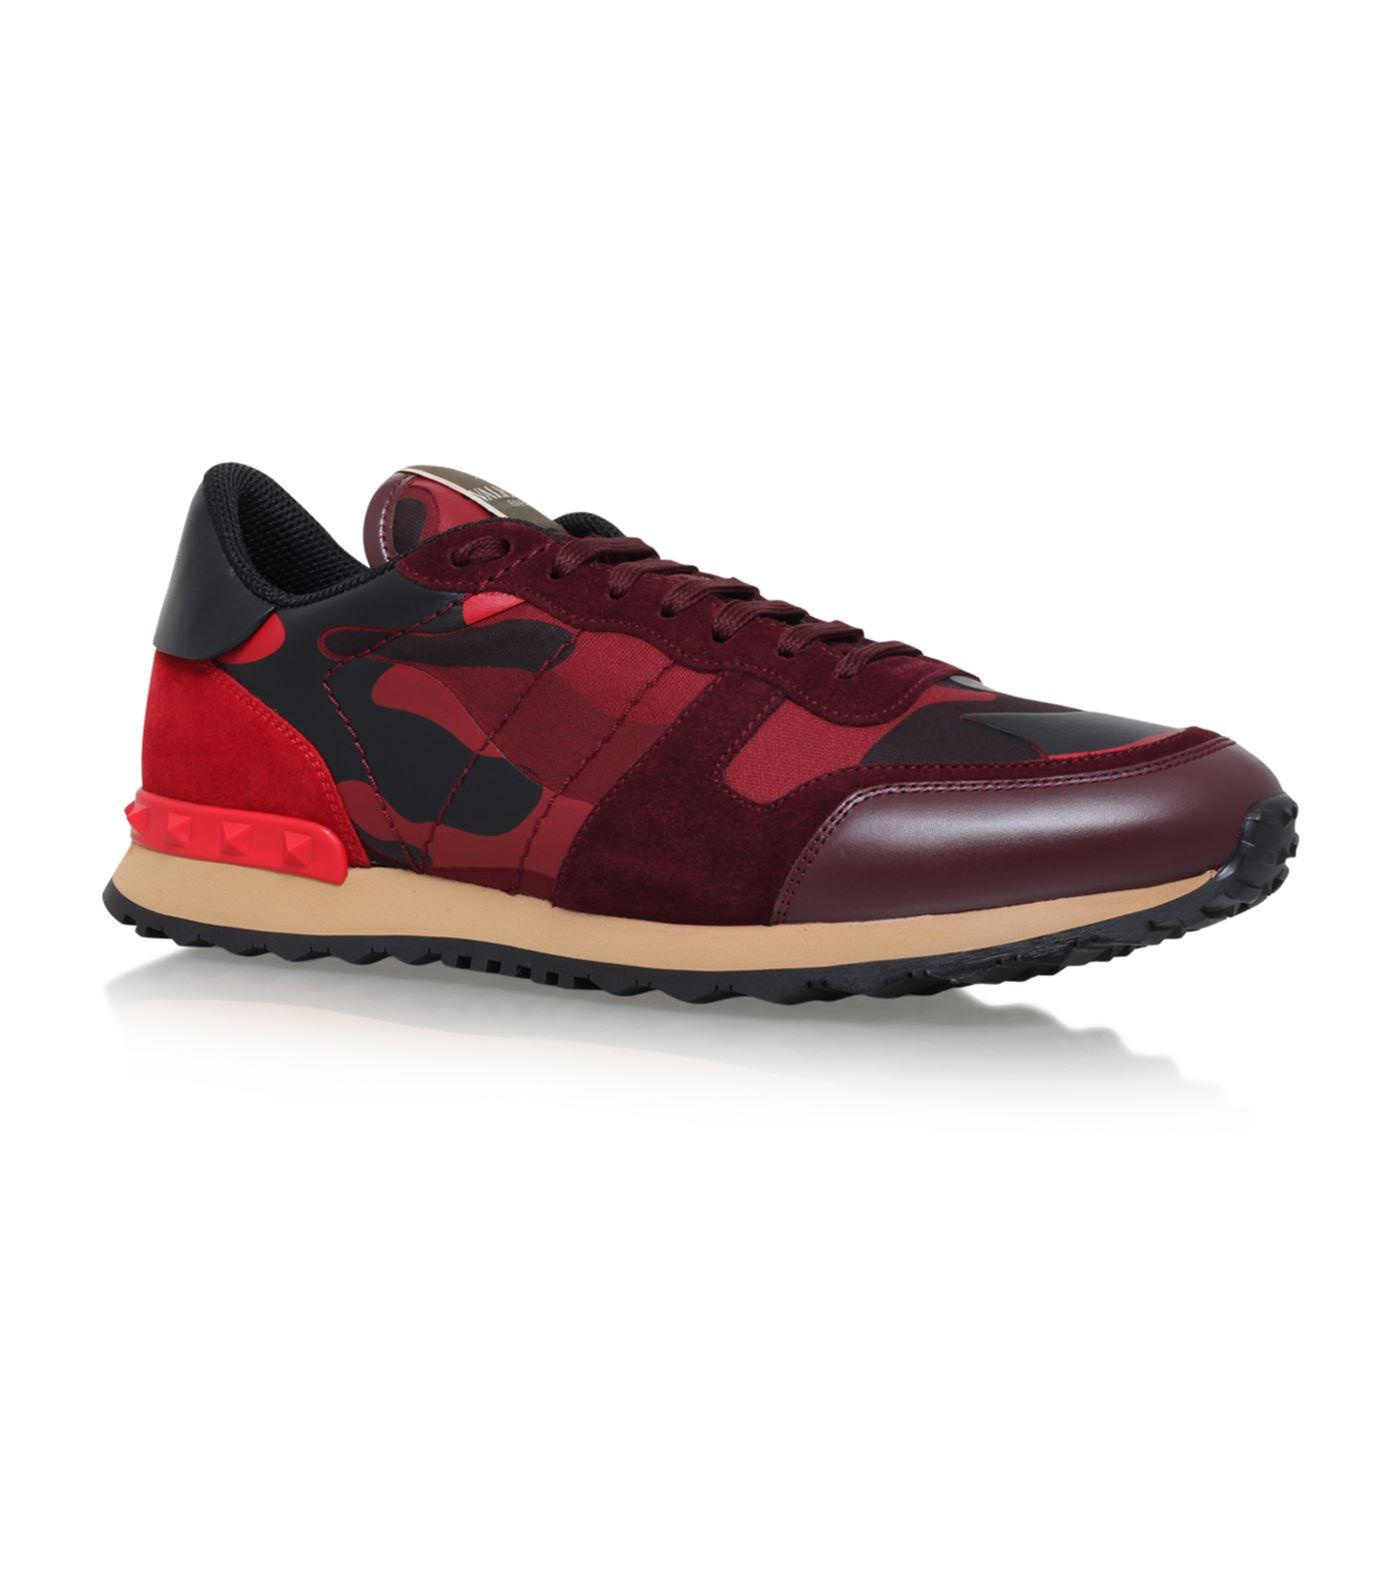 Valentino Rockrunner Camouflage-Print Suede Sneakers In R30 Rubino Scarlet Rosso